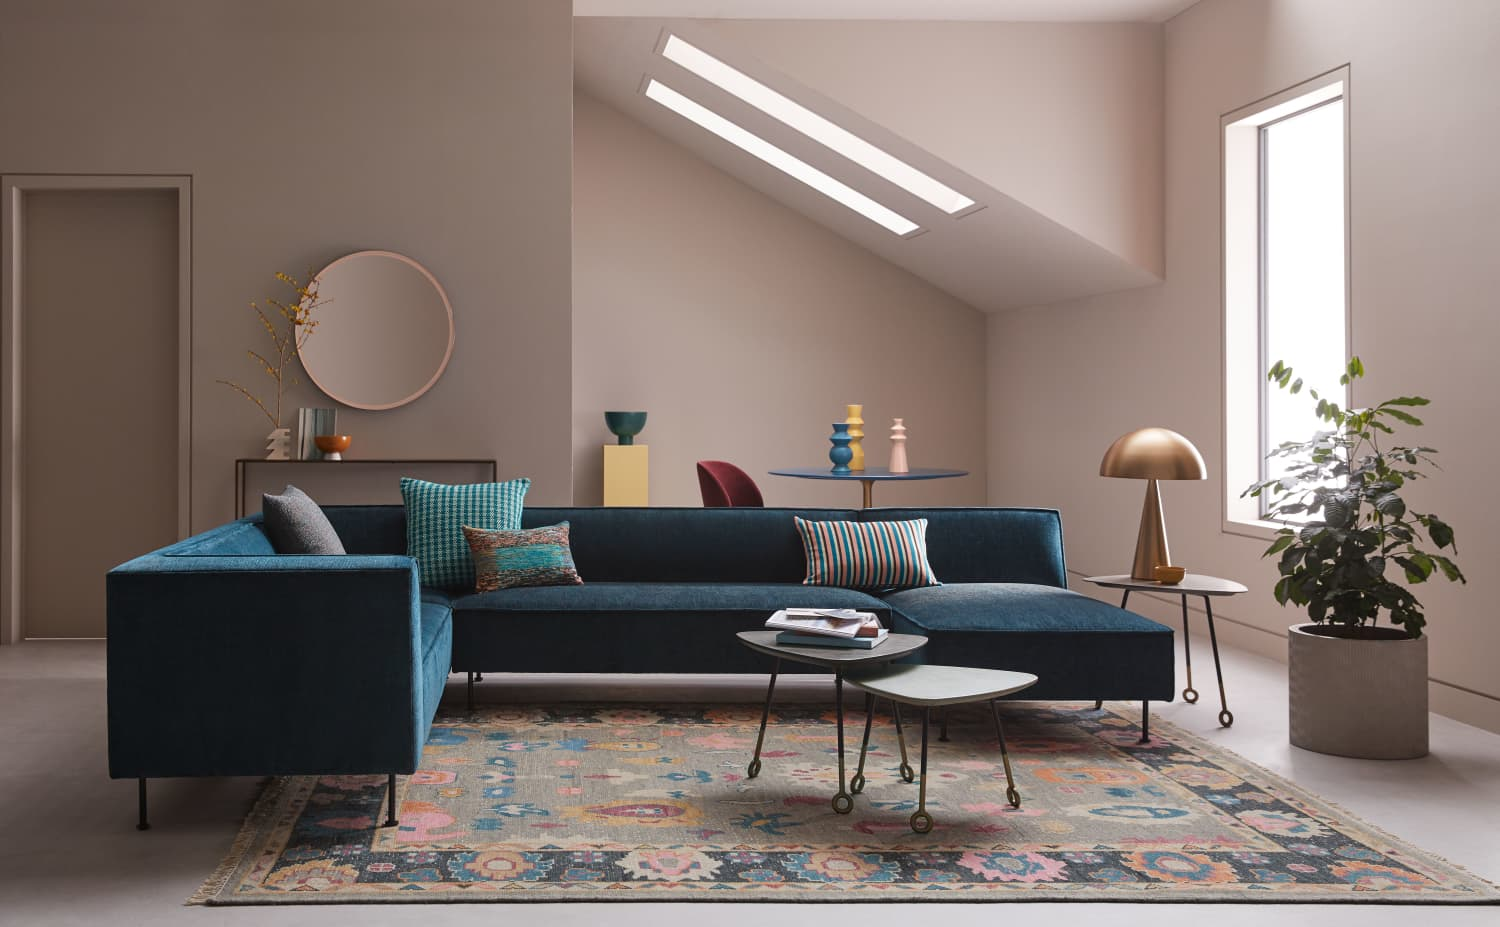 Crate & Barrel's Colorful New Brand Brings Copenhagen to You (No Passport Required)